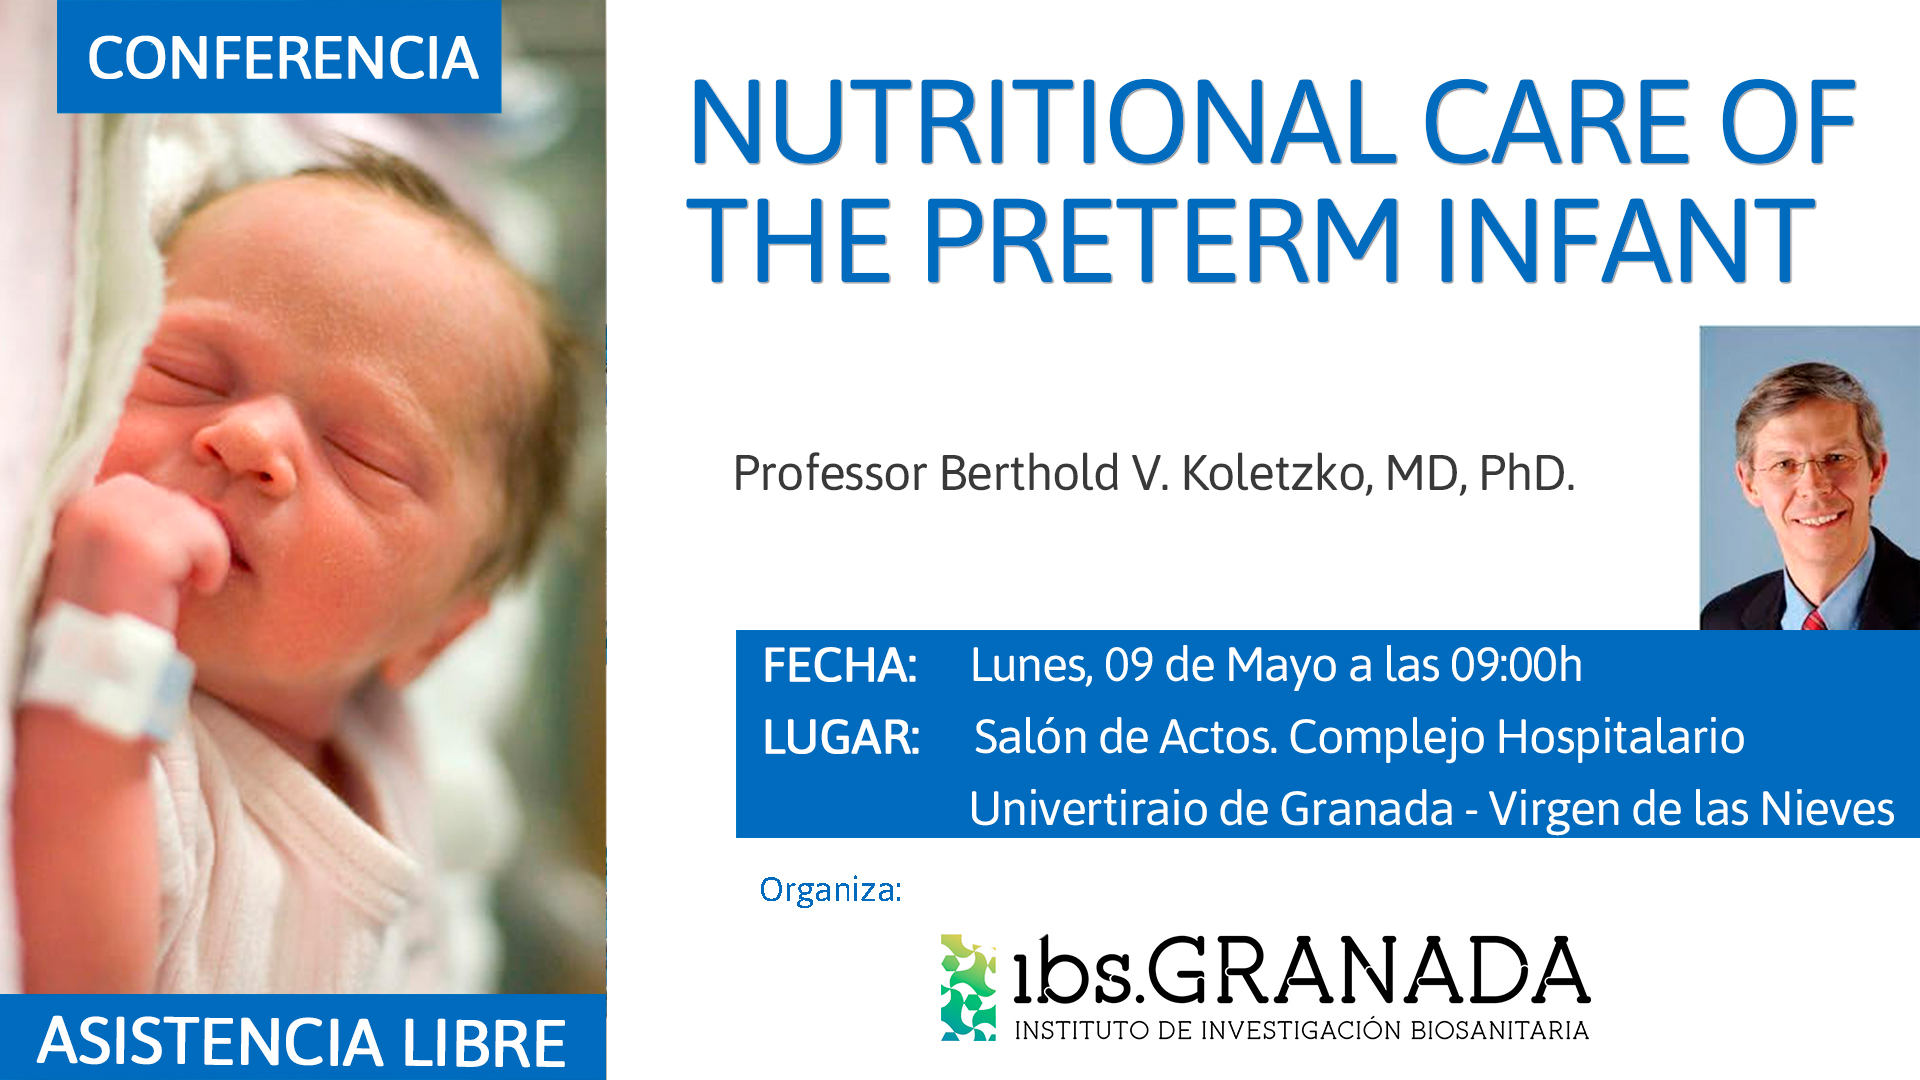 Conferencia: Nutritional care of the preterm infant